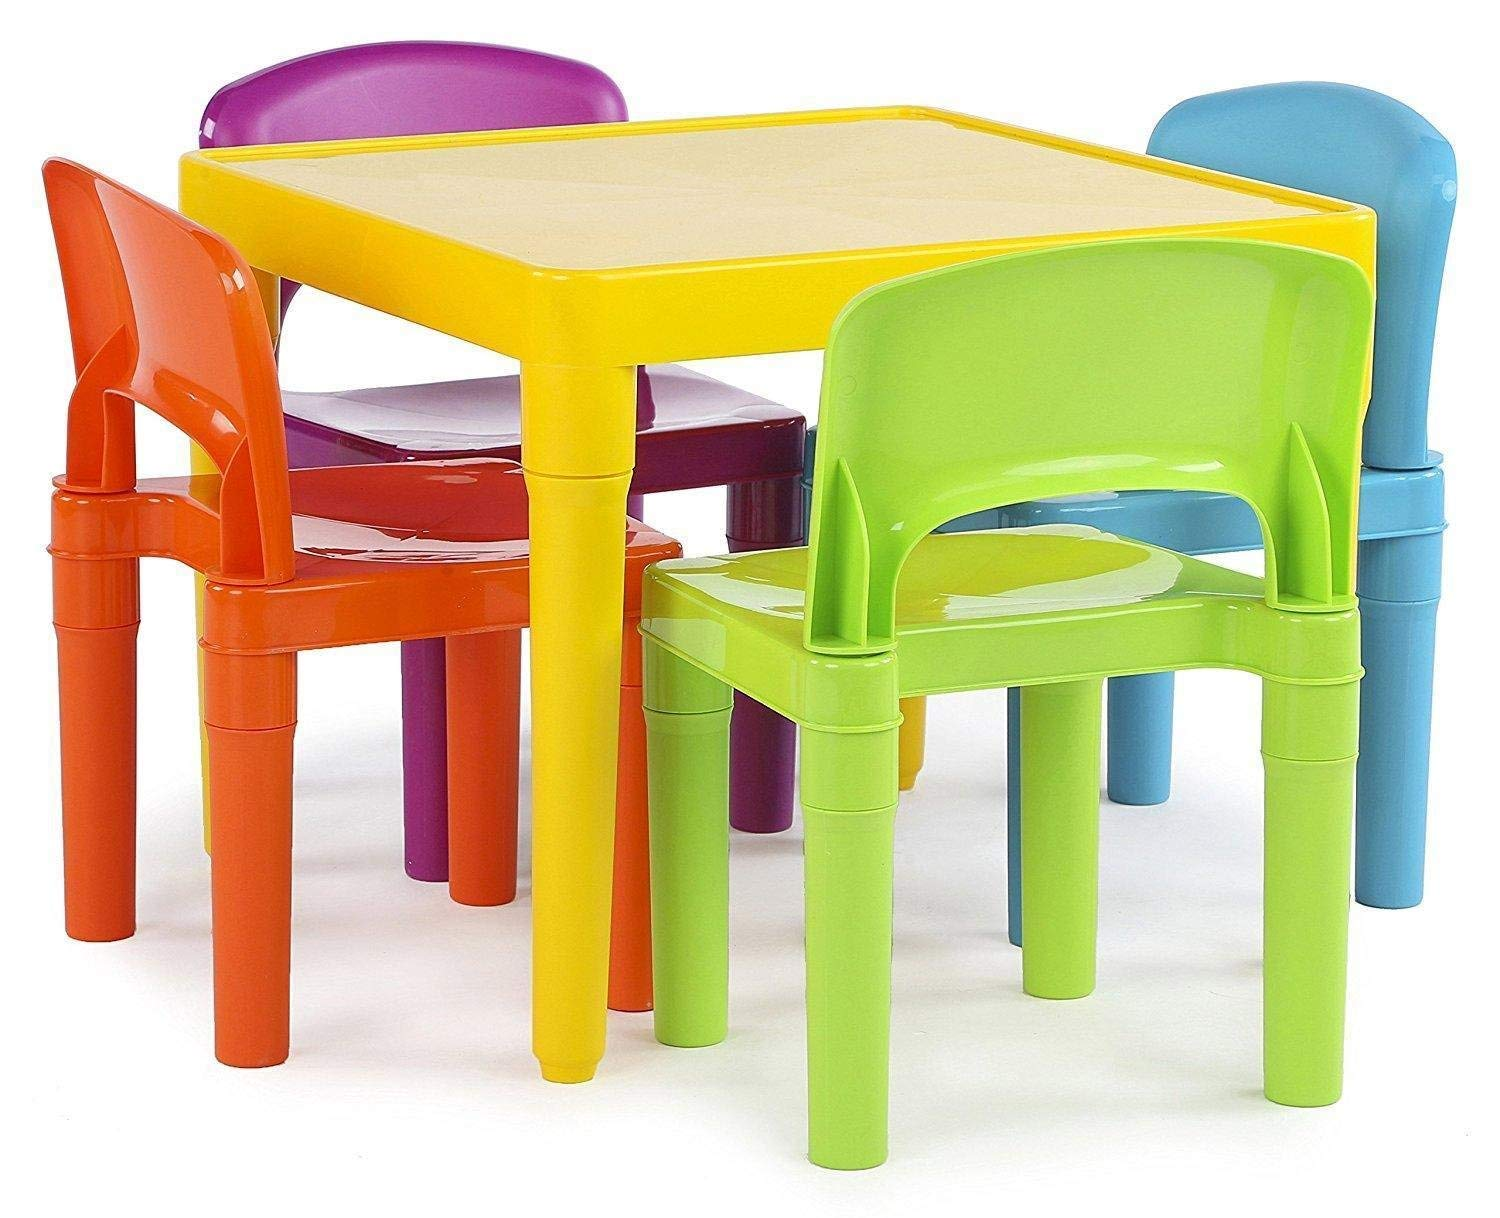 Generic Chai Set Multicolor Set Square Play color S Back Stool Seat Desk Mid Back Sto Kids Table Chairs Stool Se Desk Mid